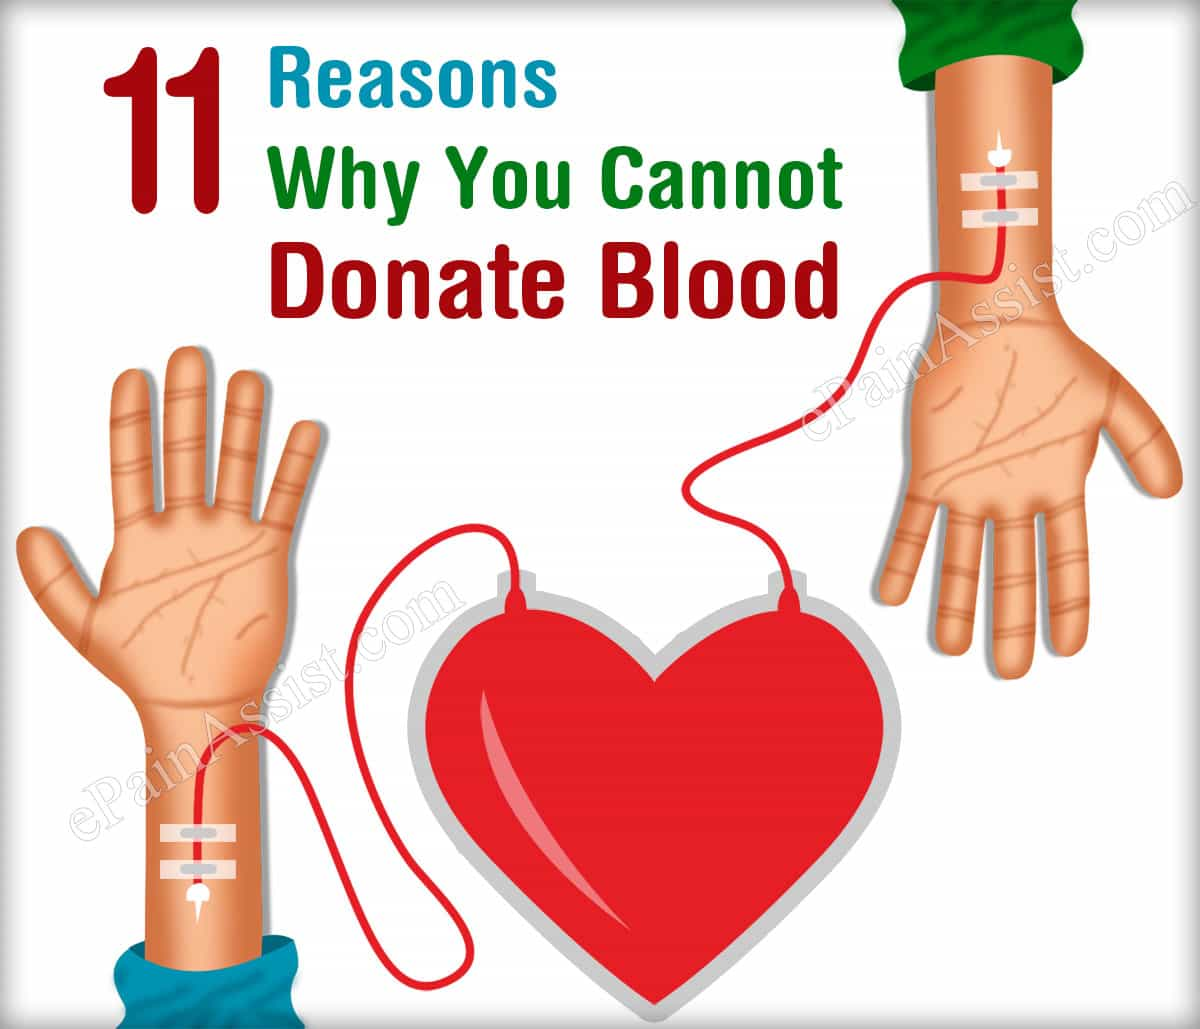 11 Reasons Why You Cannot Donate Blood